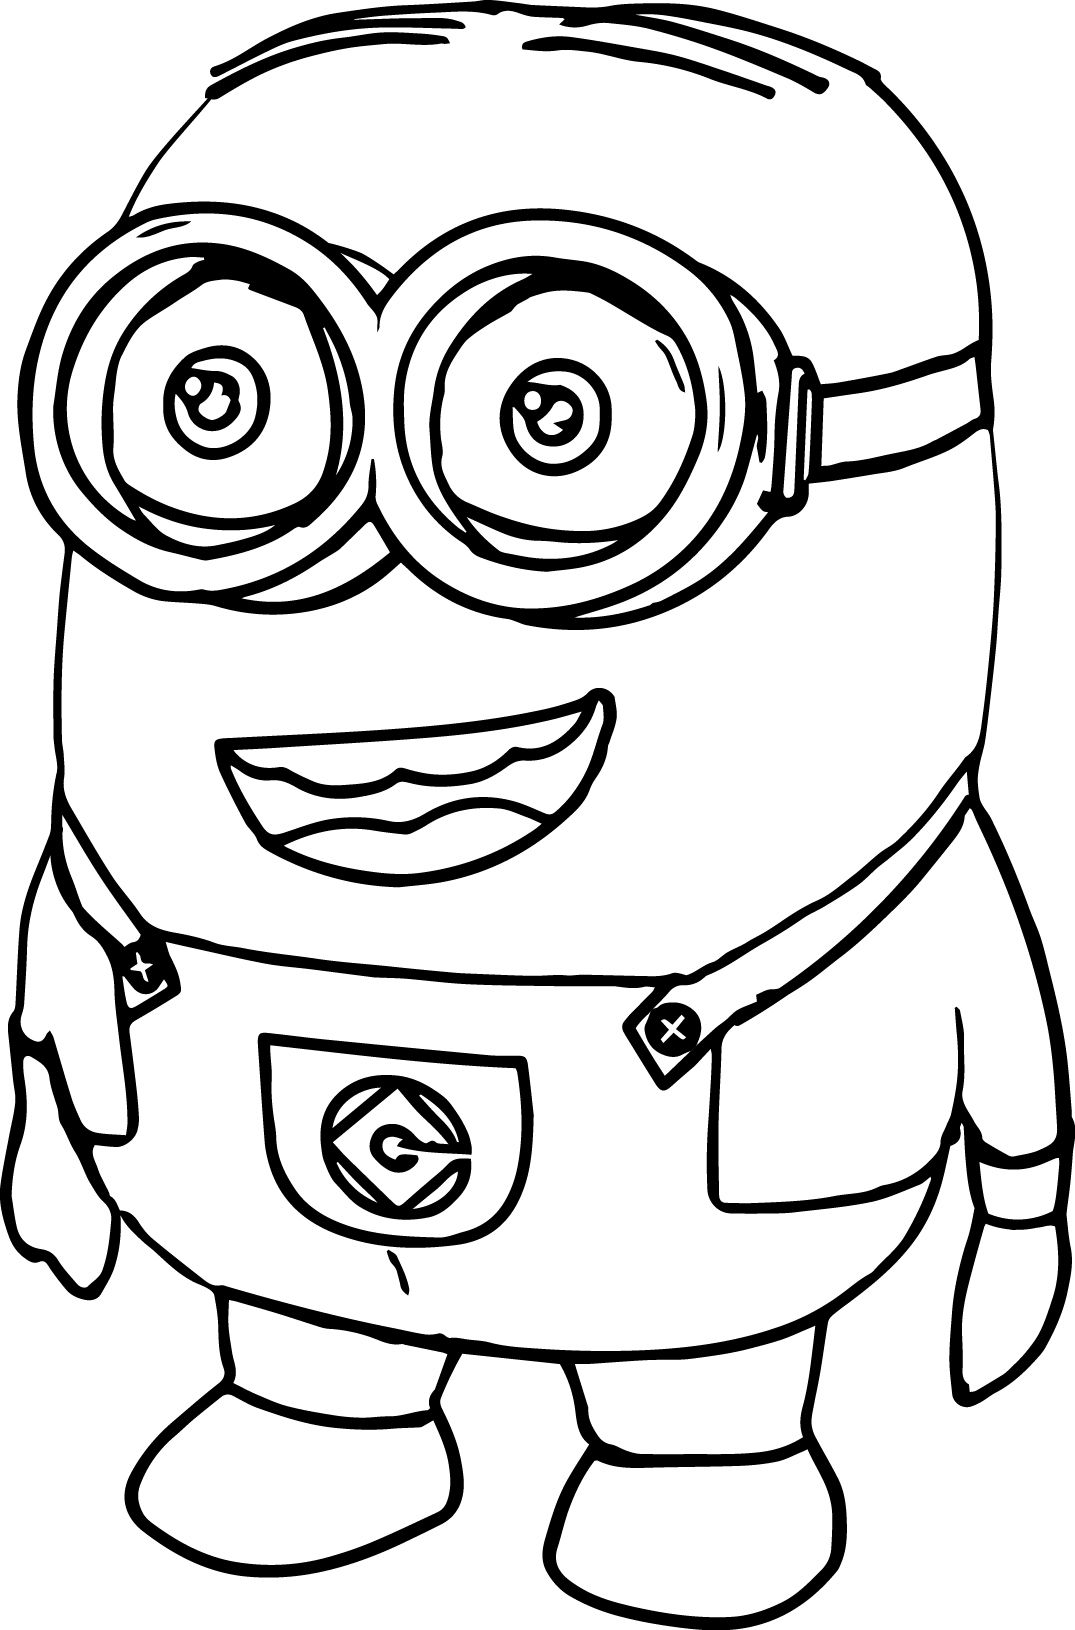 Awesome Minions Large Plush Style Coloring Page Coloring Pages Bible Coloring Minions [ 1630 x 1075 Pixel ]